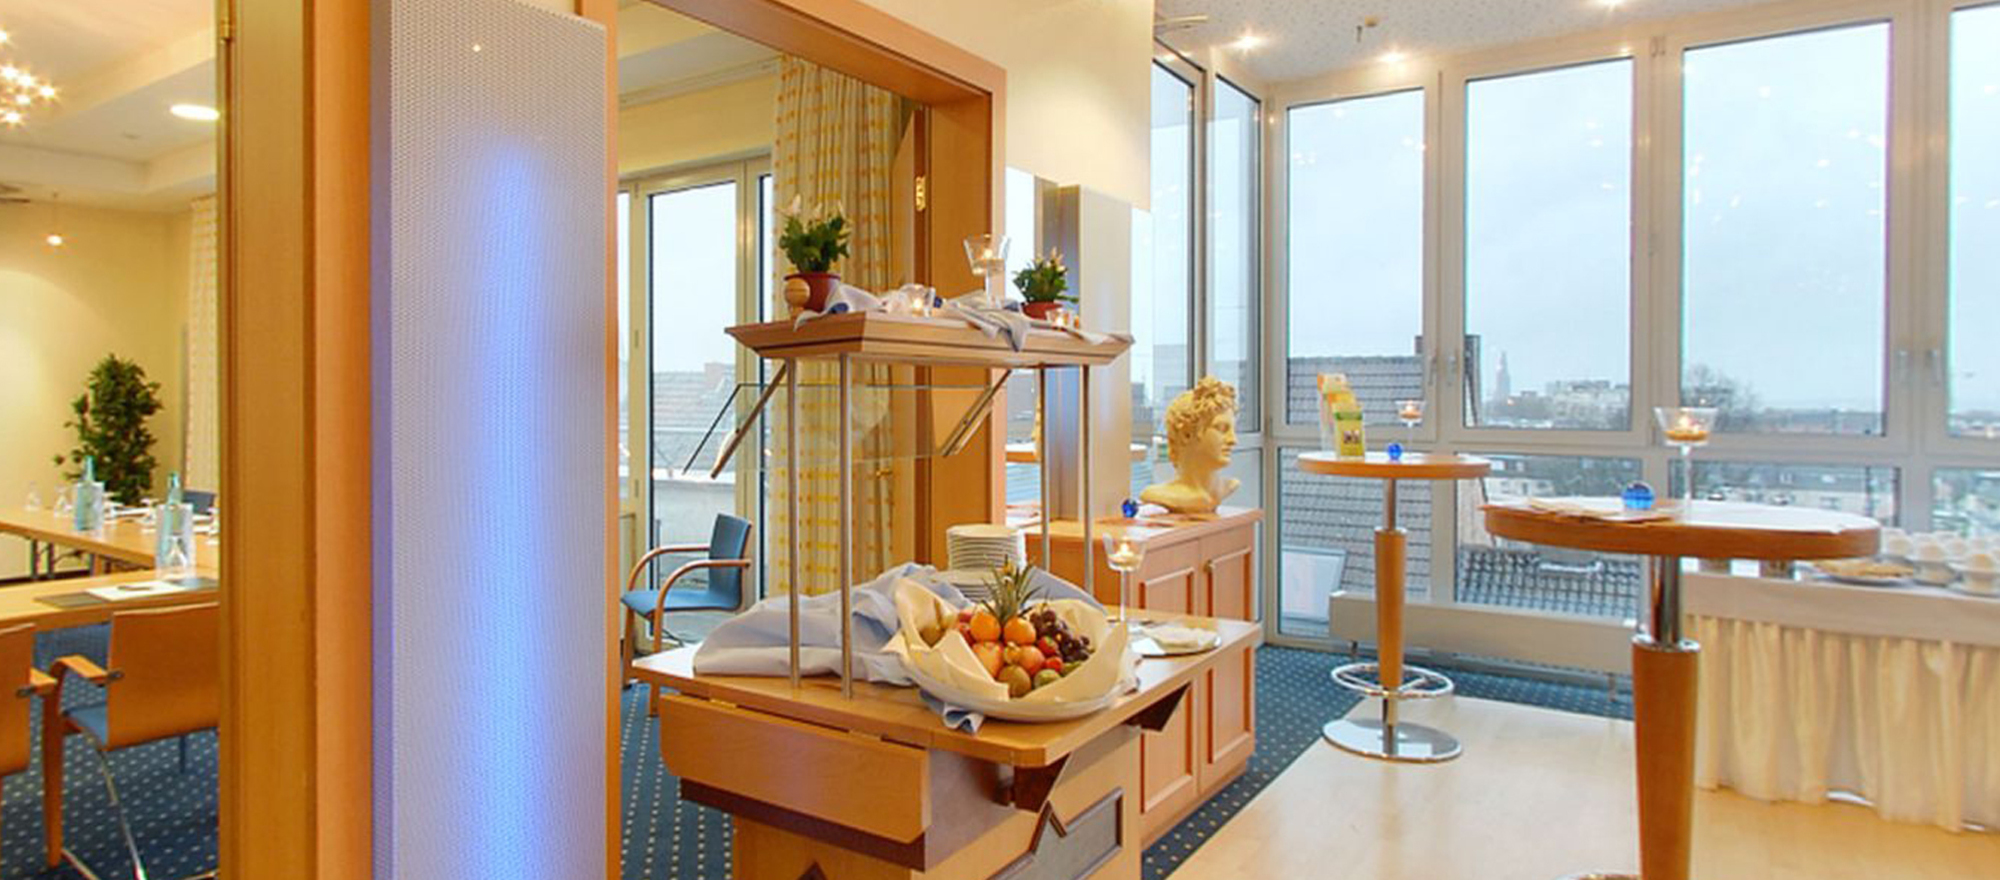 Meeting space with catering and lounge area at the 4-star Ringhotel Drees in Dortmund